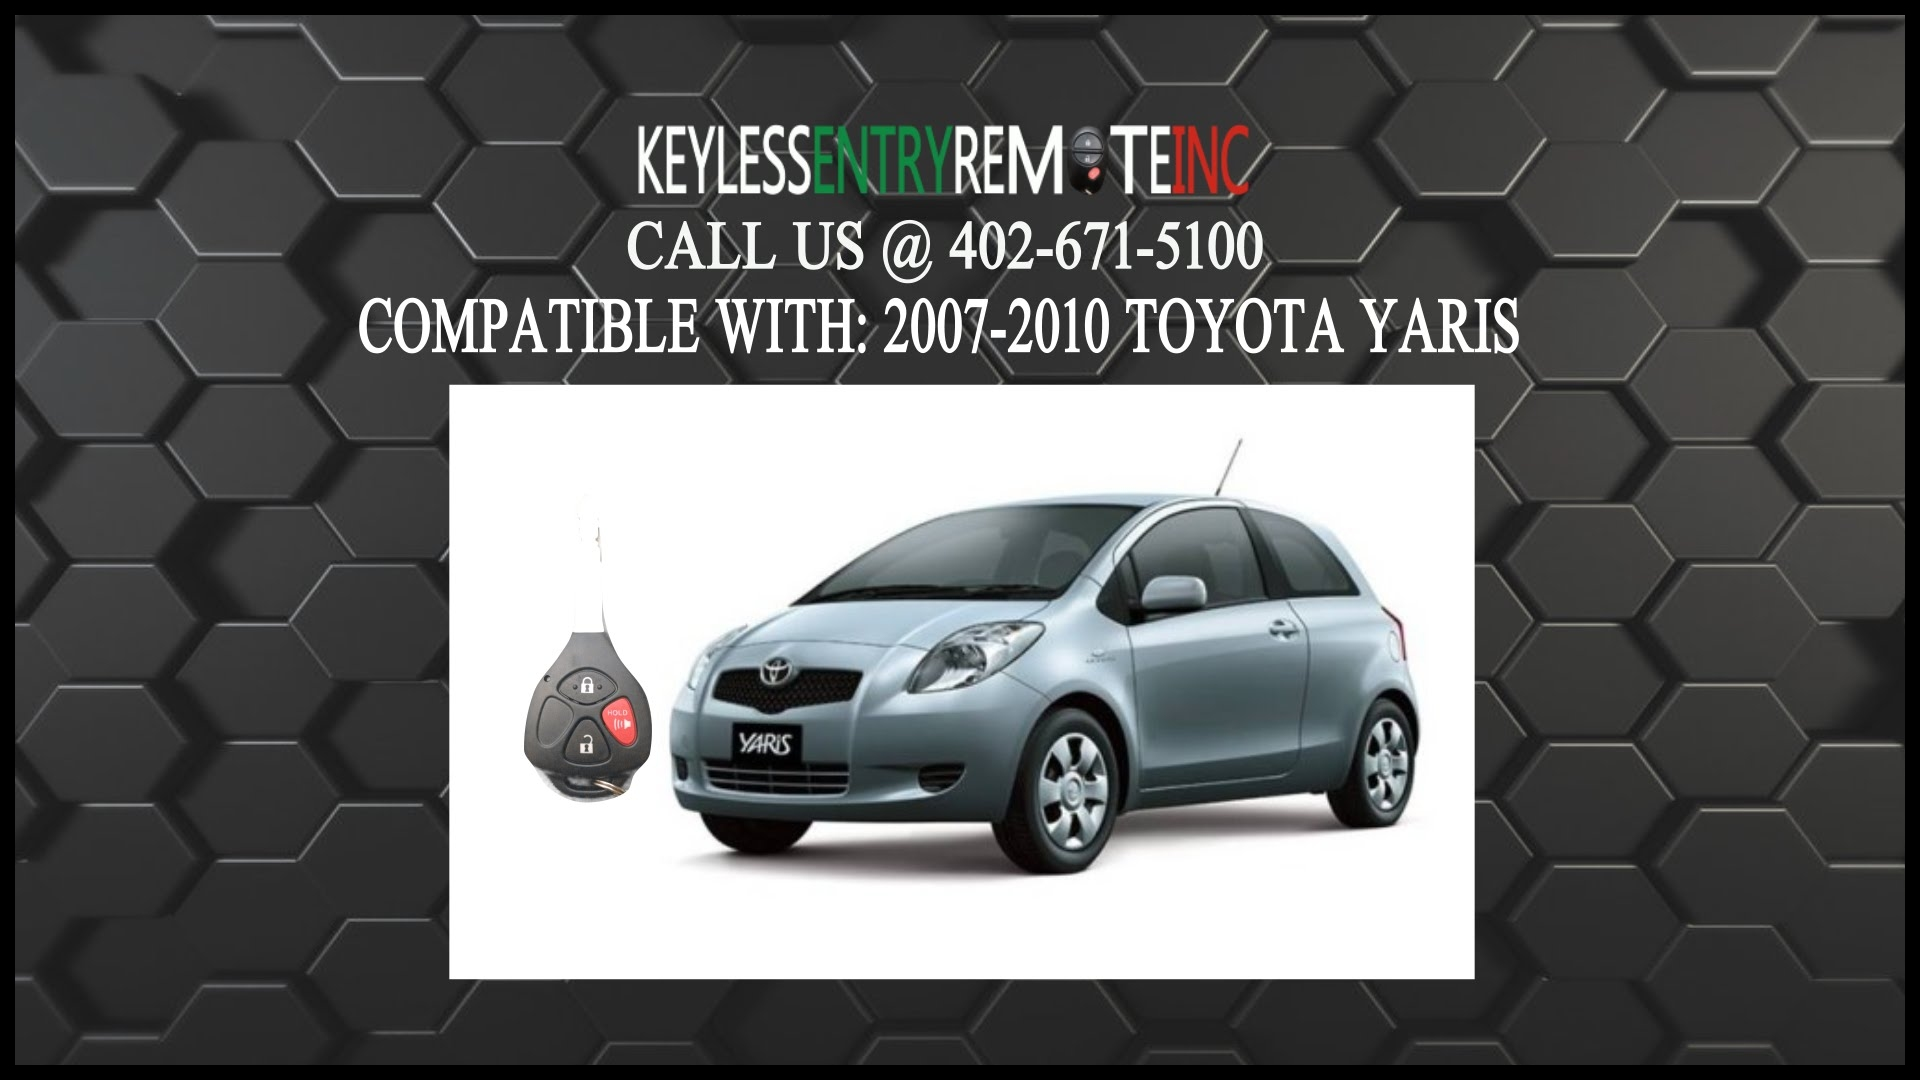 How To Replace Toyota Yaris Key Fob Battery 2007 2008 2009 2010